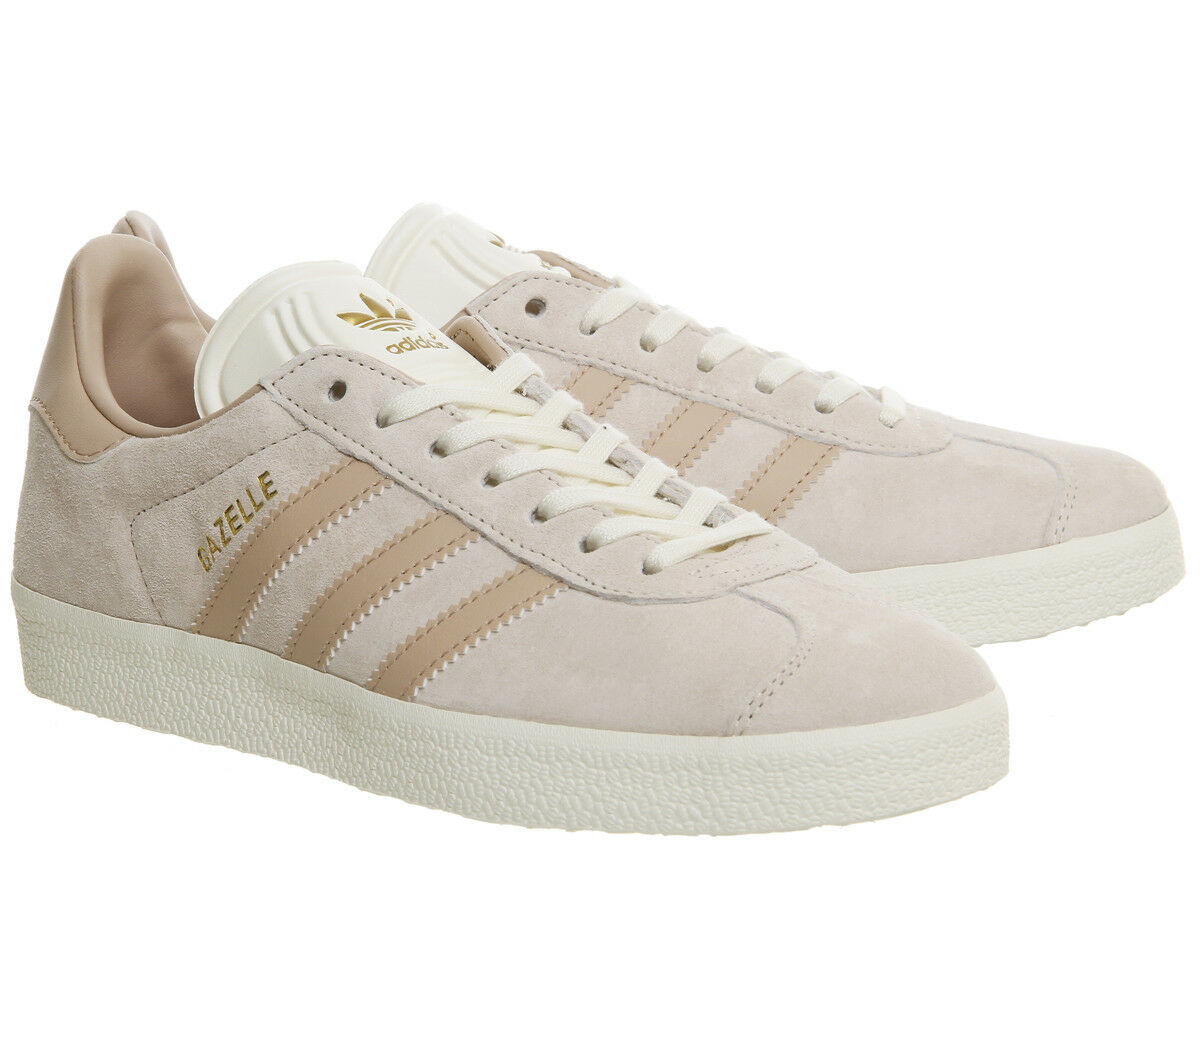 Adidas Men Gazelle  Linen Dust Pearl Cream Trainer 10.5 UK EU 45 1 3 USA 11